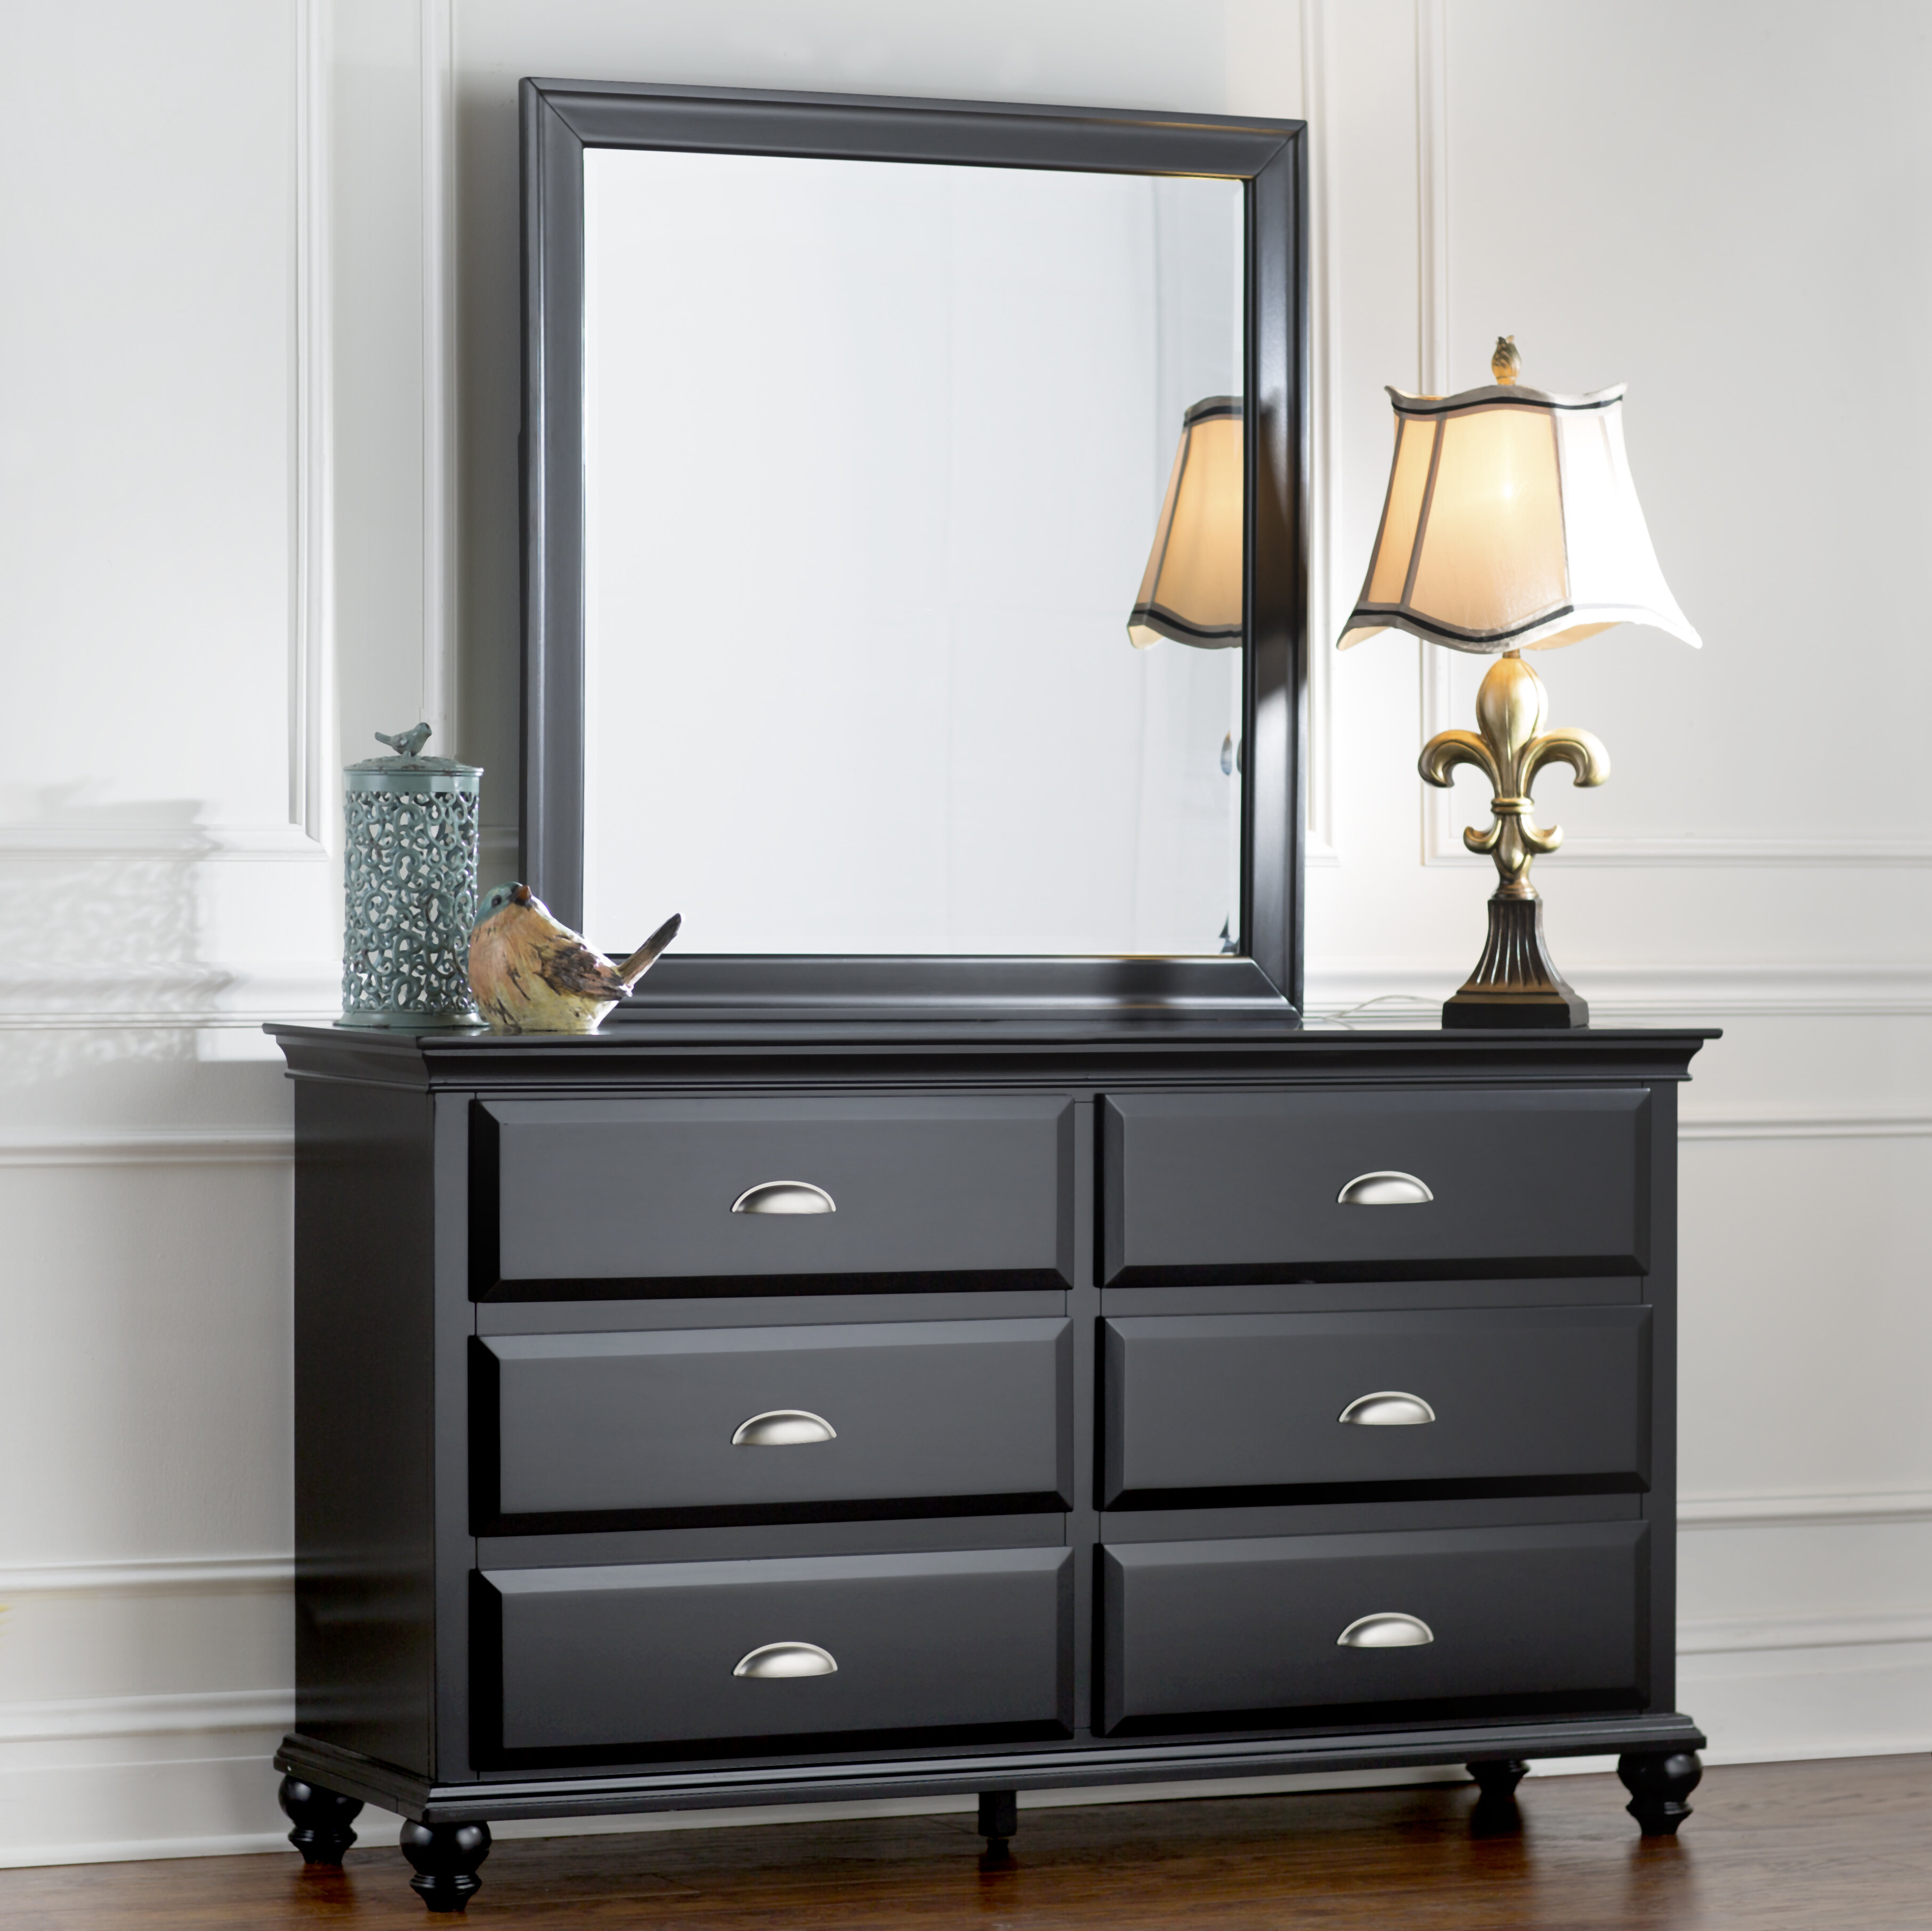 top large of chest mirror on drawer black bedroom uk sale dresser dressers cheap thin for oak drawers with